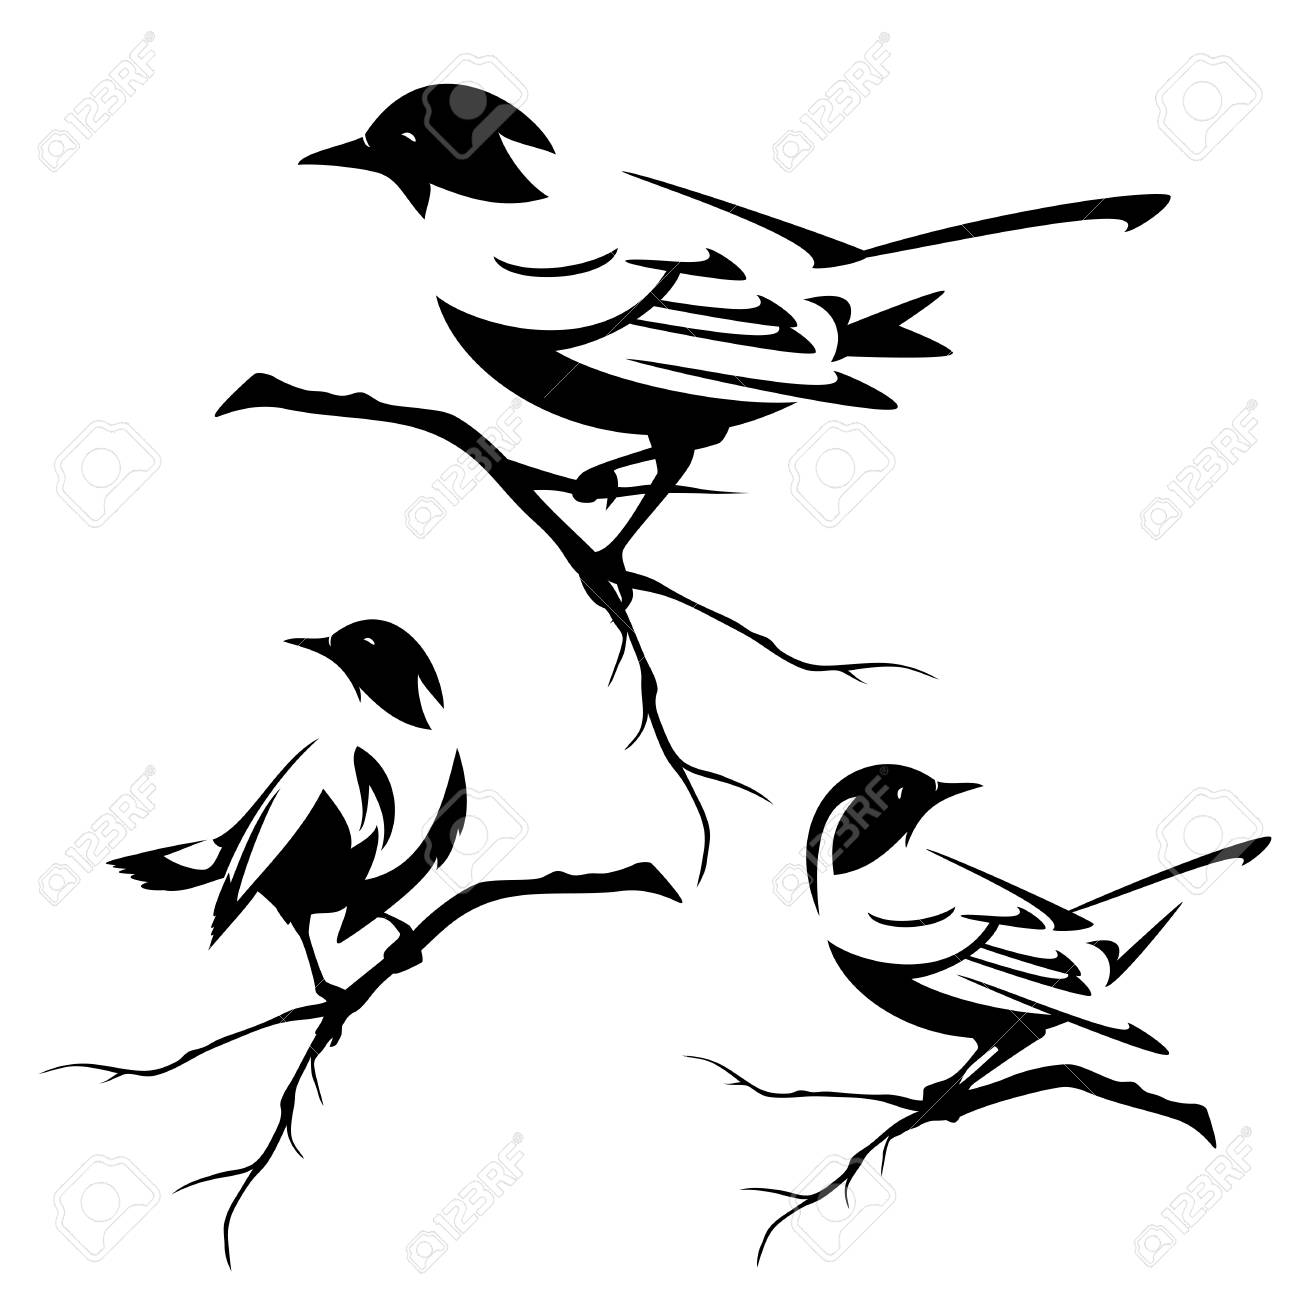 small birds sitting on tree branches.